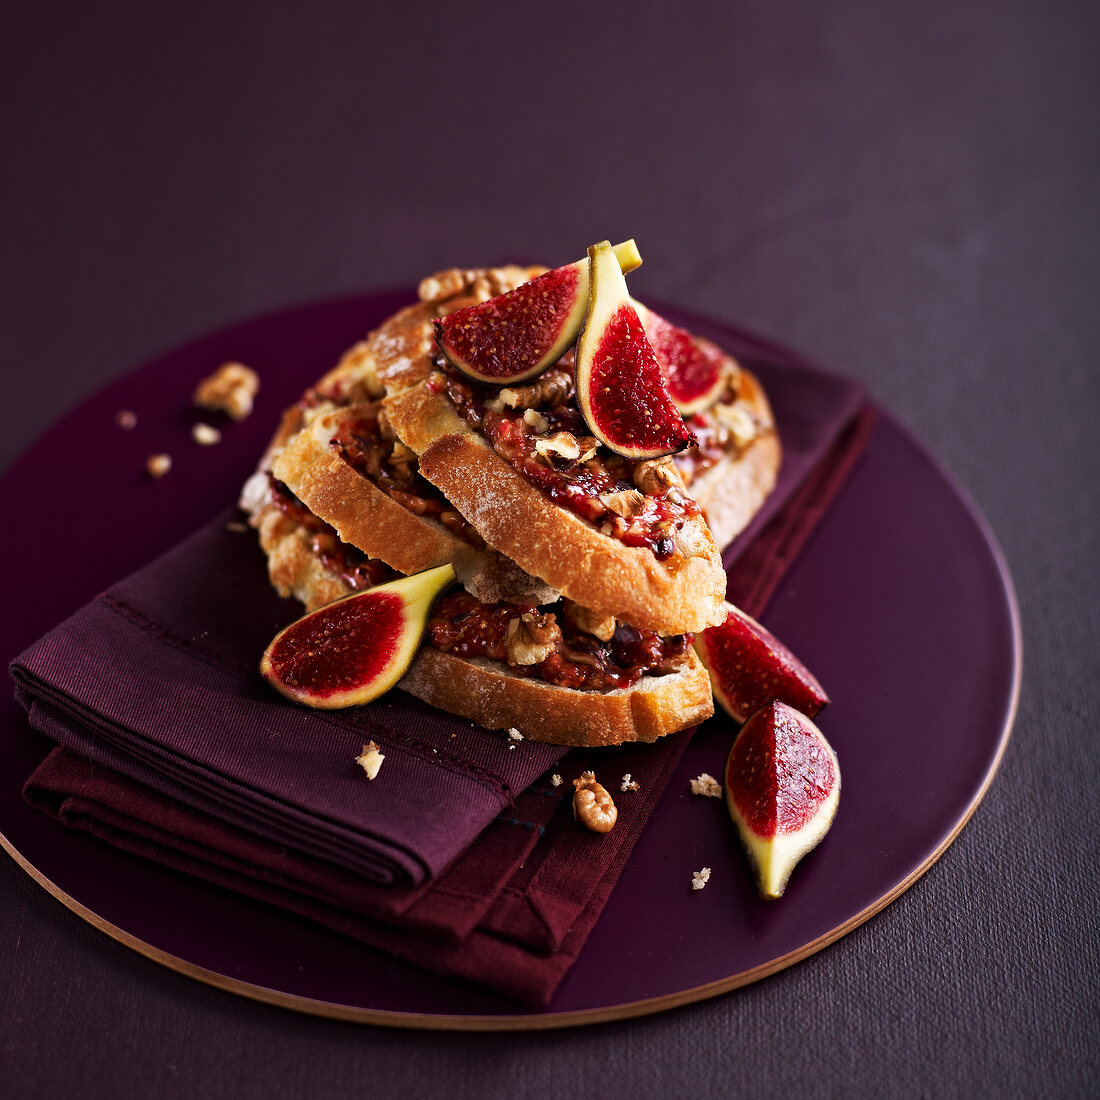 Fig and walnut open sandwiches